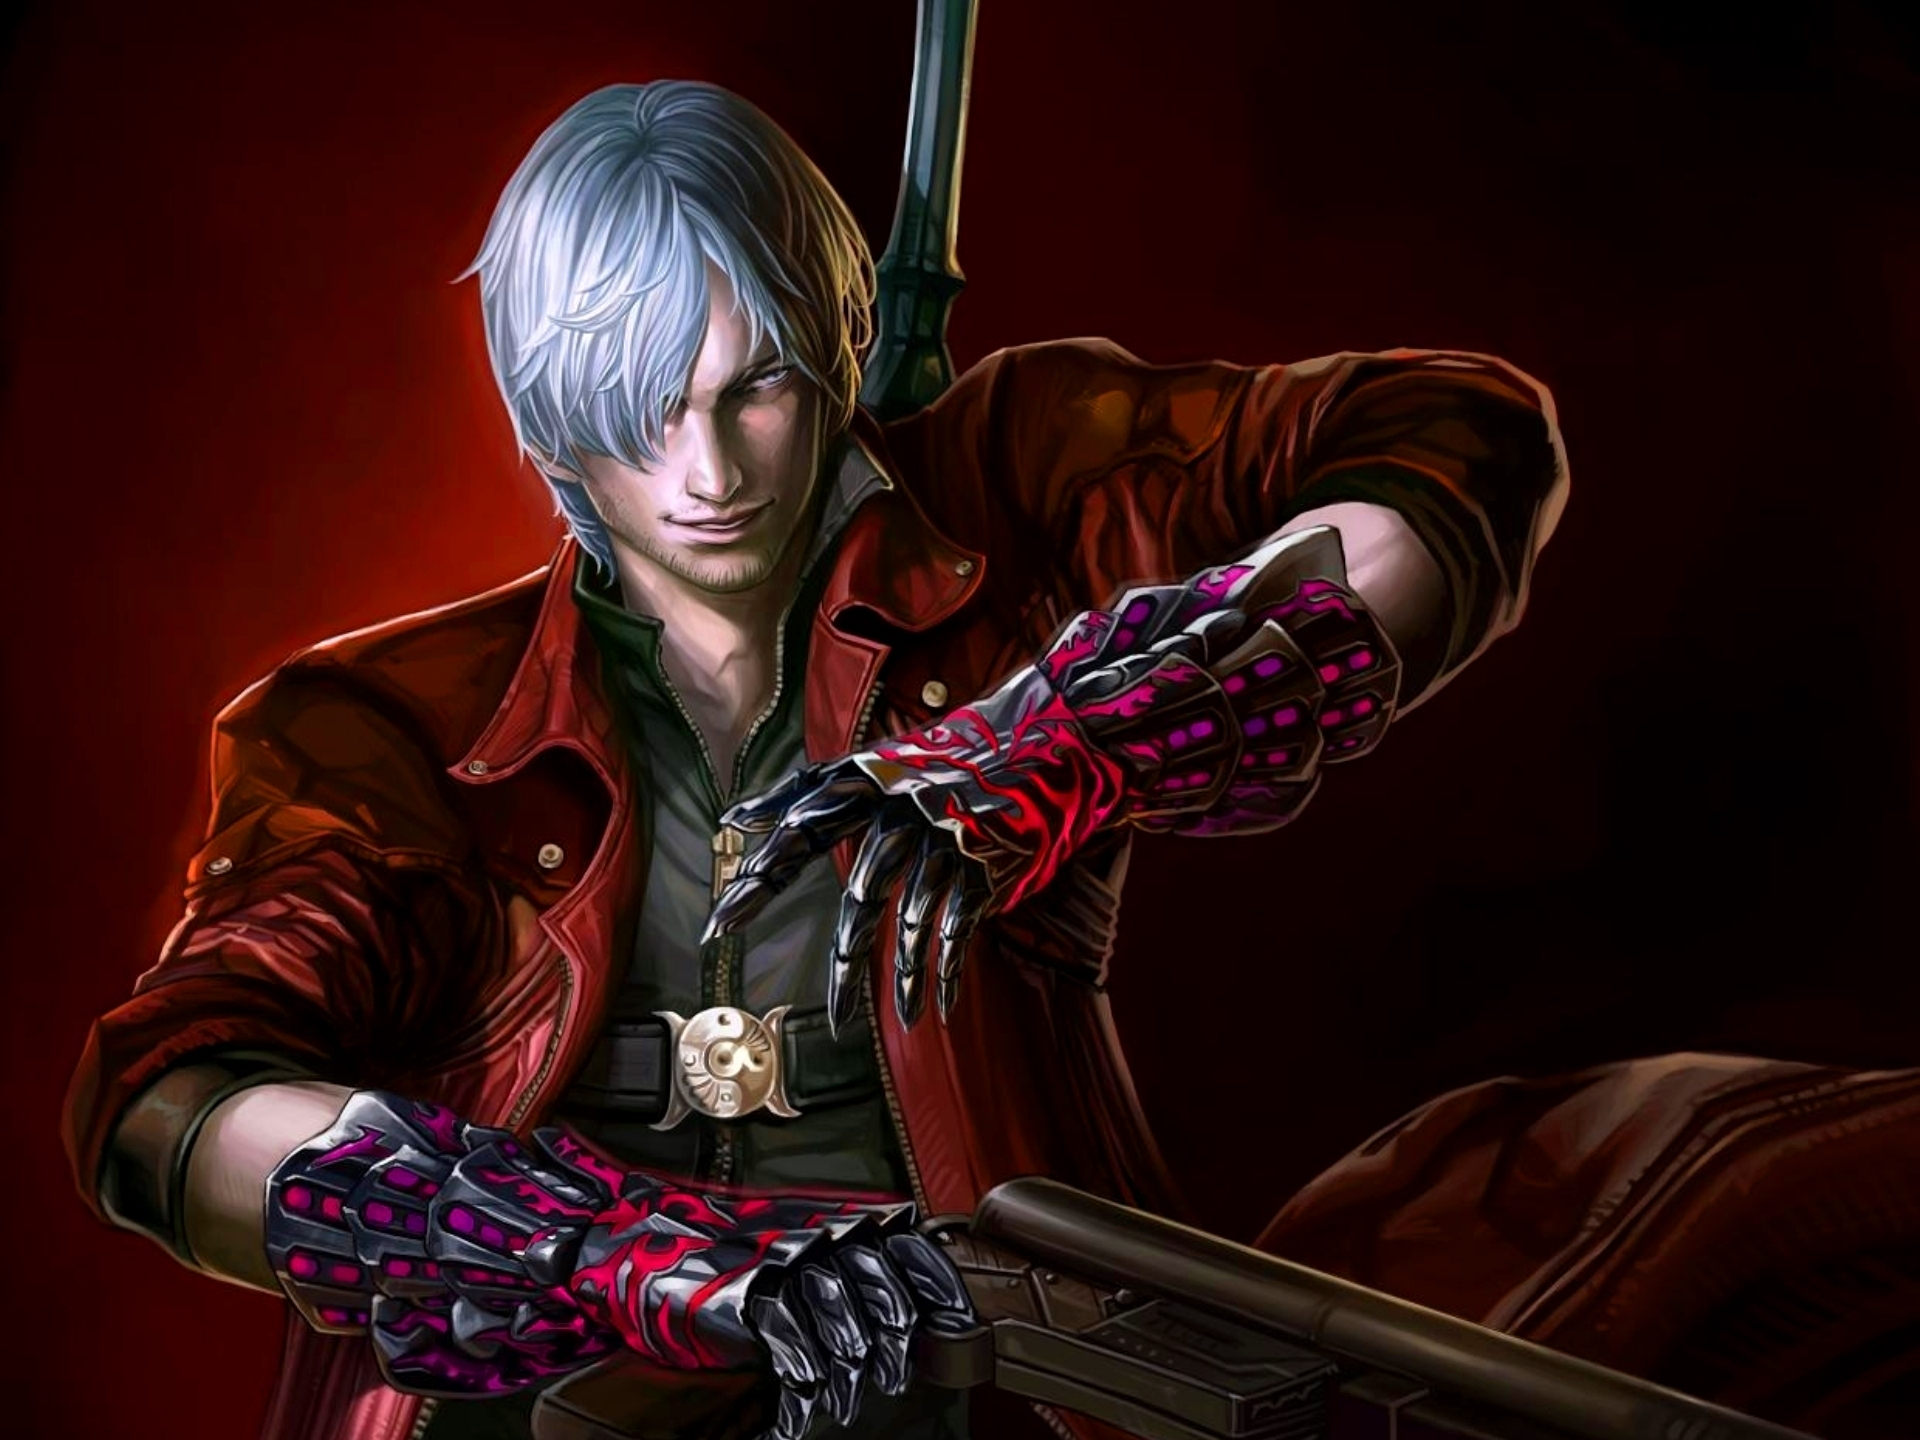 Devil may cry hd wallpapers high quality all hd wallpapers - Devil may cry hd pics ...